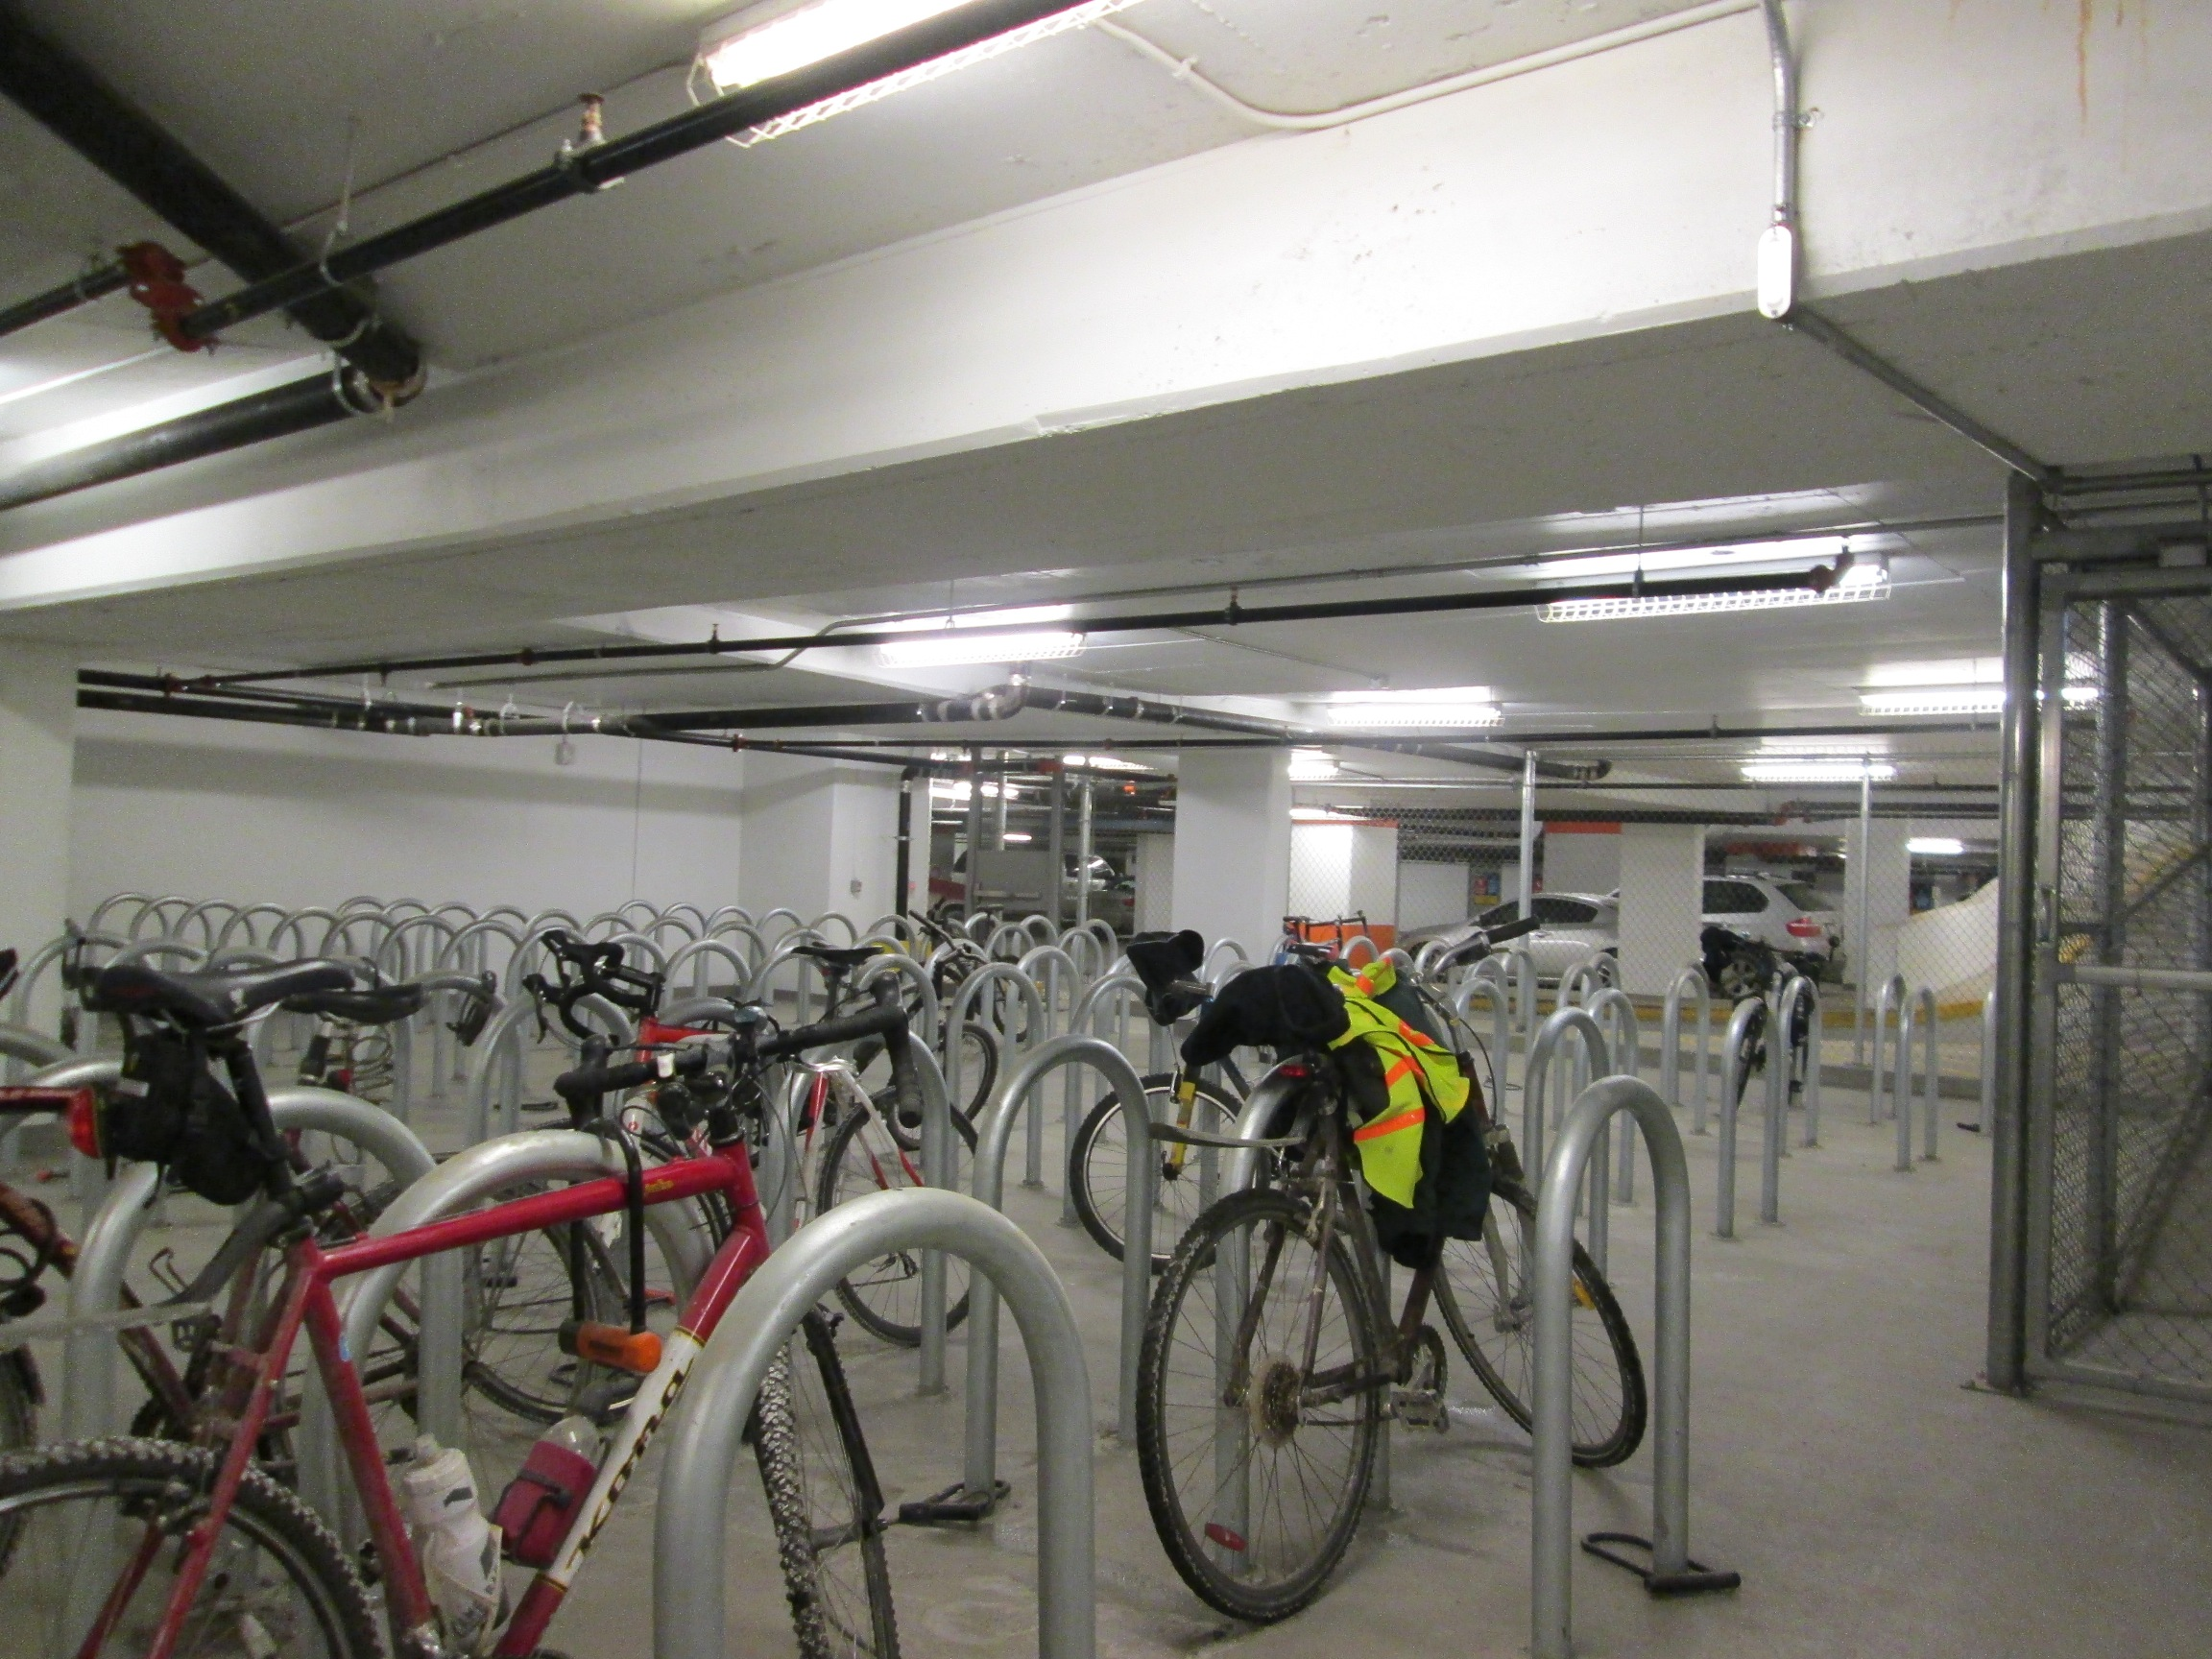 Eight Avenue Place has 300 secure bike parking stalls and showers, along with a separate bike entrance from the street. All new downtown office buildings are including bike parking as it gets them one LEED point and additional floor space that they can lease out. Approximately 1,000 new bike parking stalls have been added to the downtown with the completion of Eight Avenue Place, The Bow and the Centennial Place office towers.